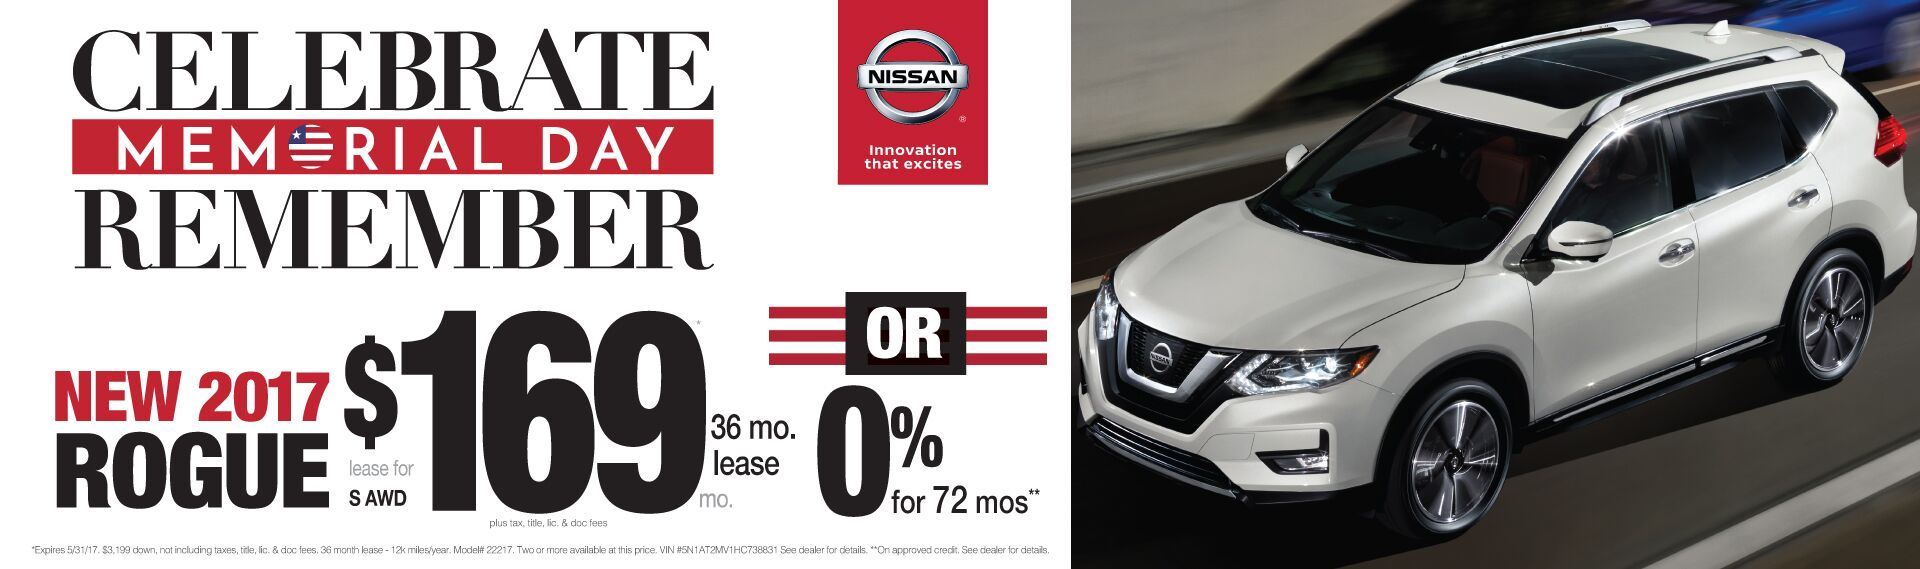 Memorial Day Savings On Nissan Rogue